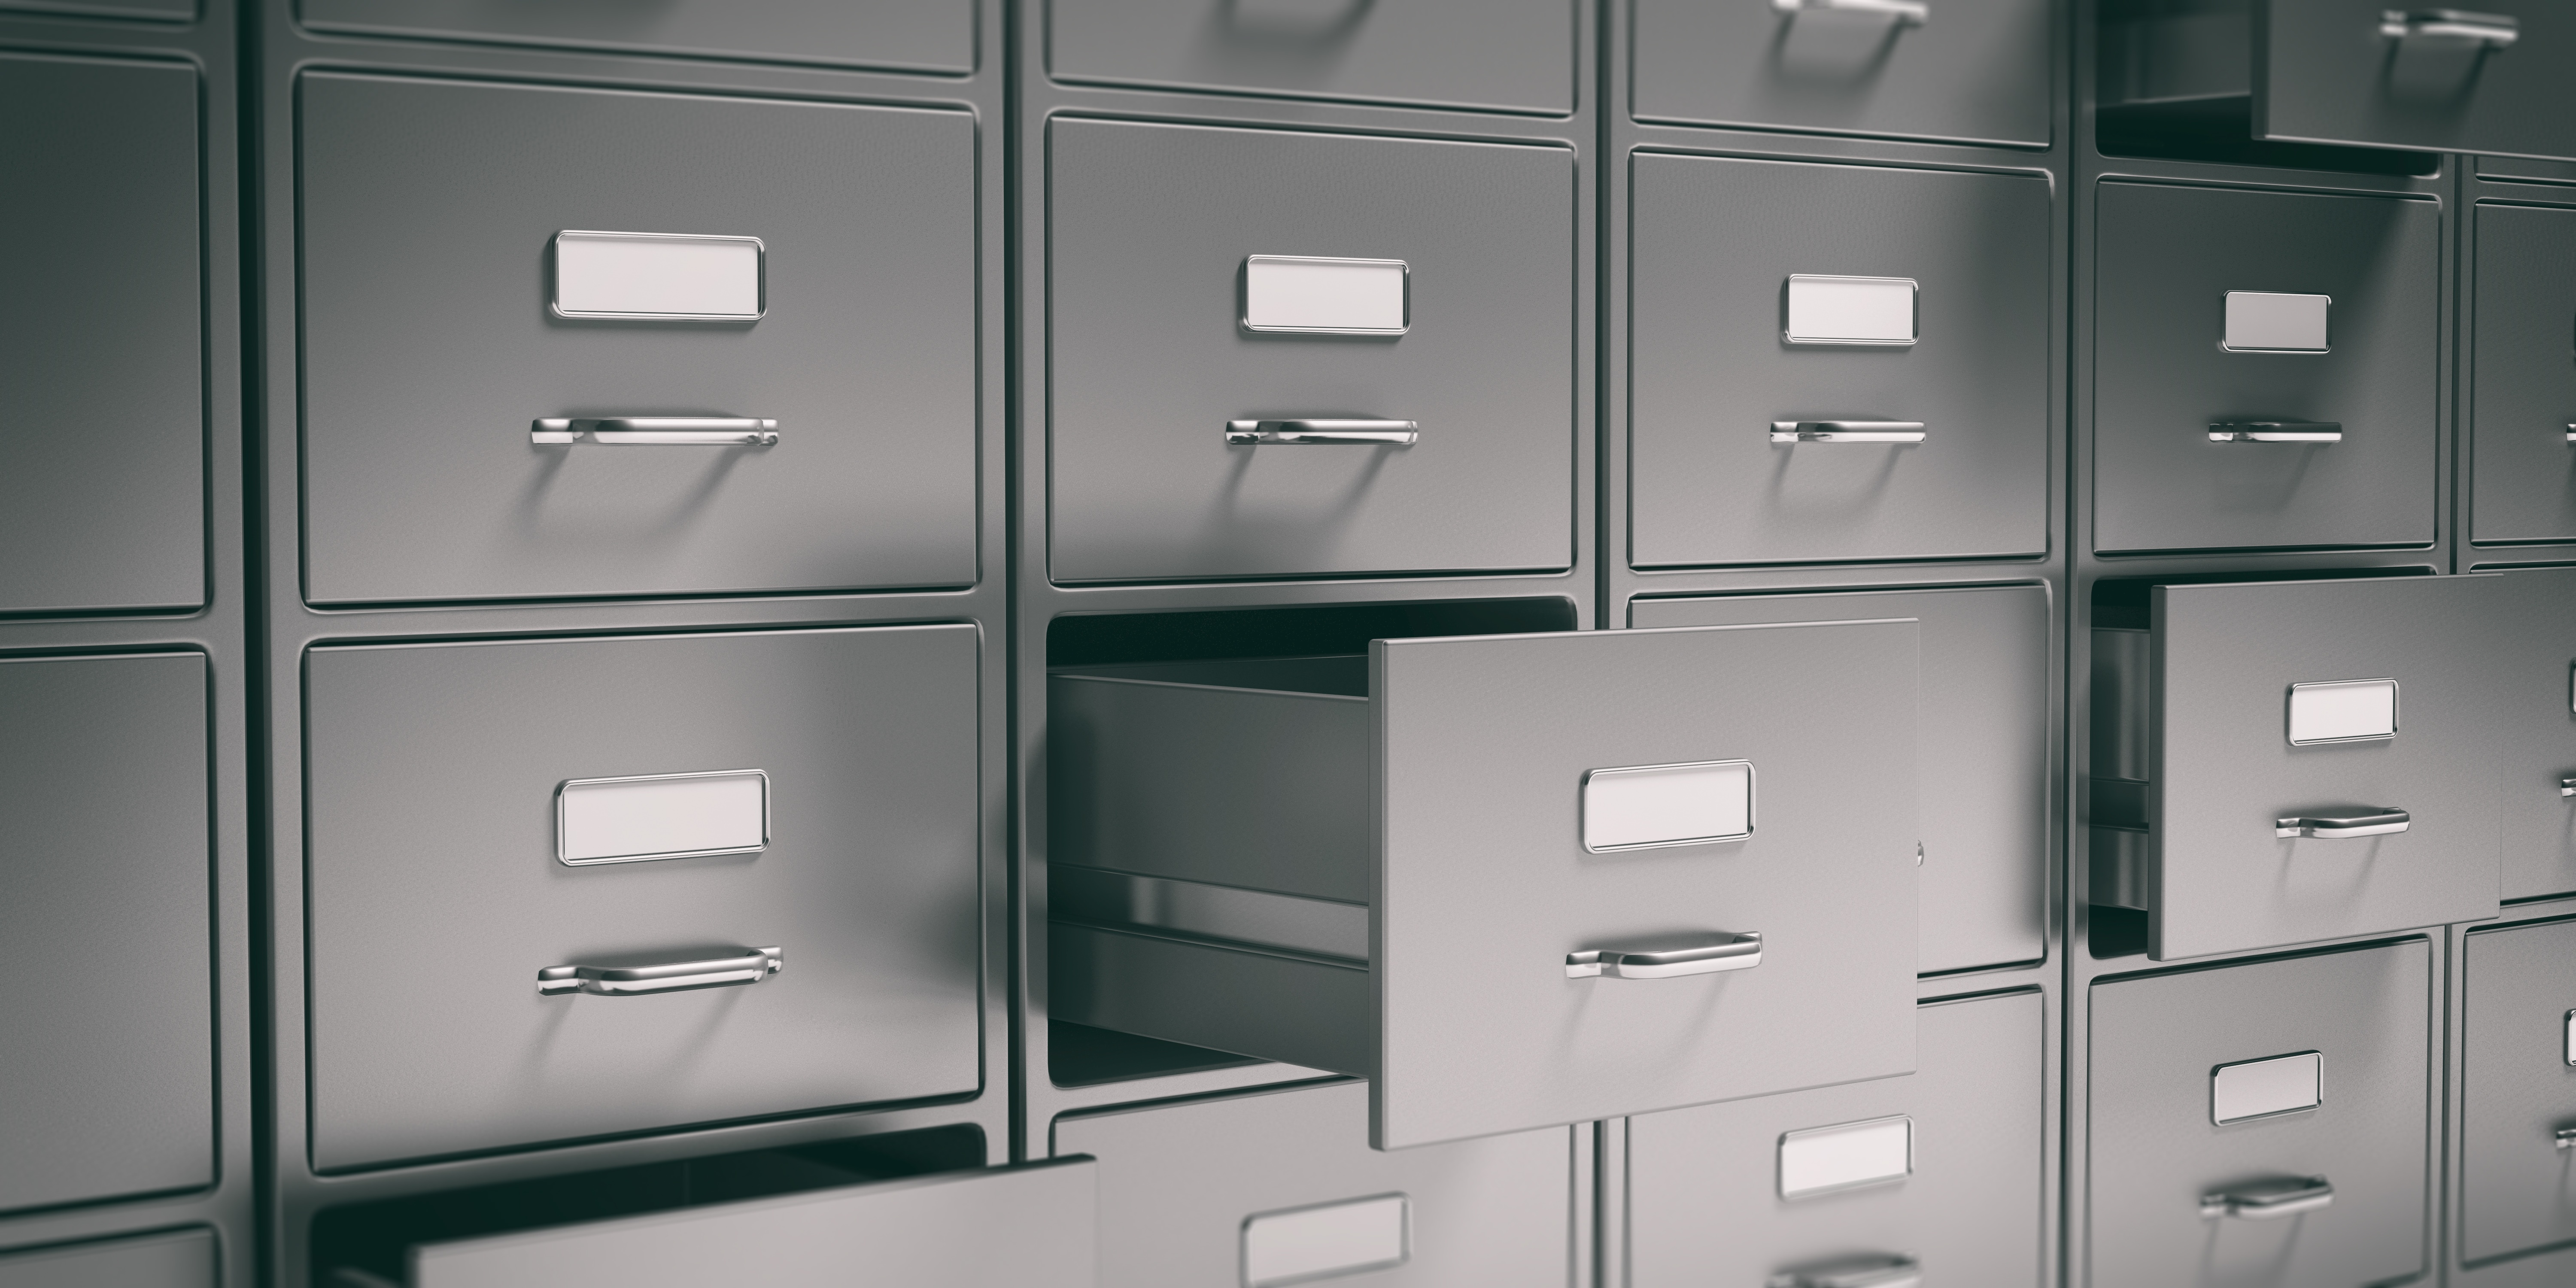 Protecting documents during an office move